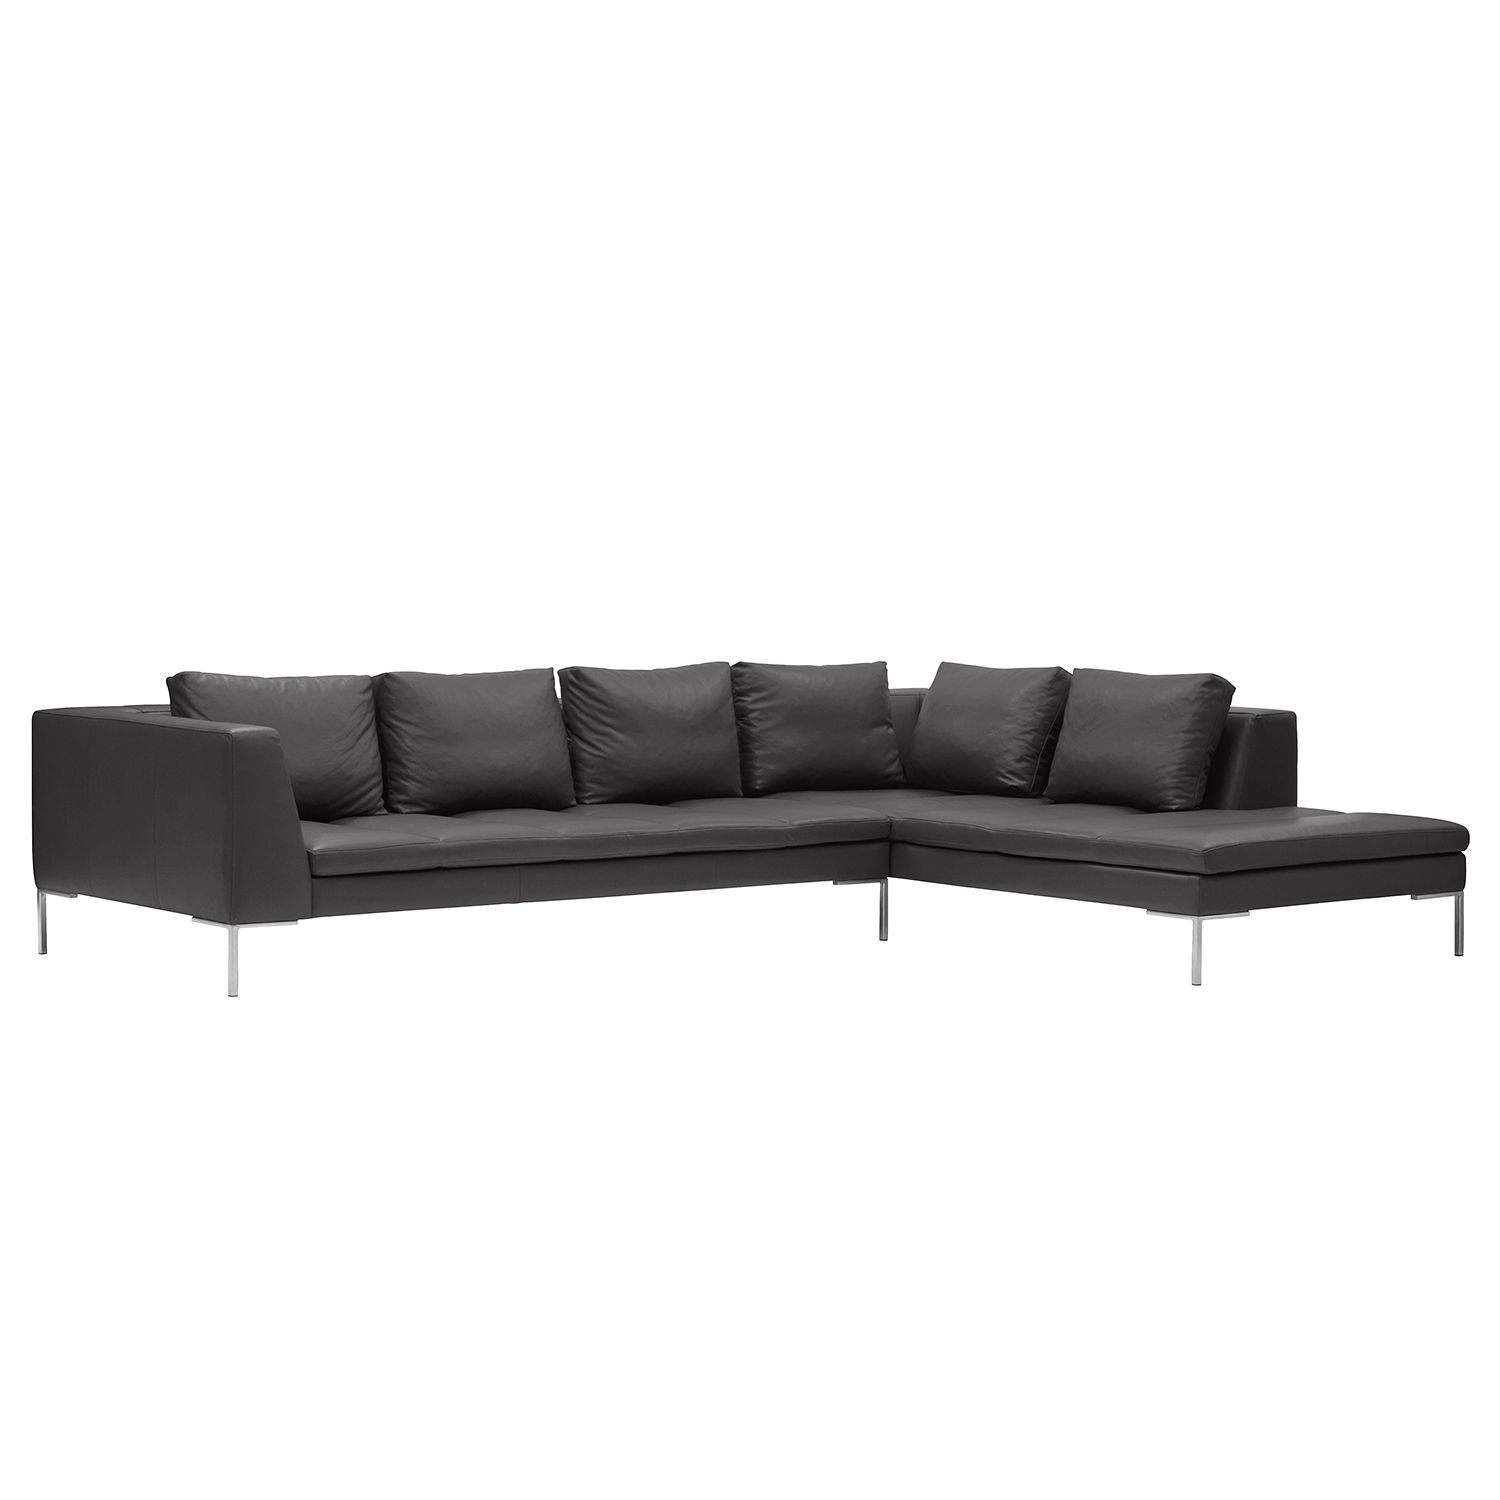 ecksofa mit schlaffunktion f r kleine r ume dlrg vreden. Black Bedroom Furniture Sets. Home Design Ideas